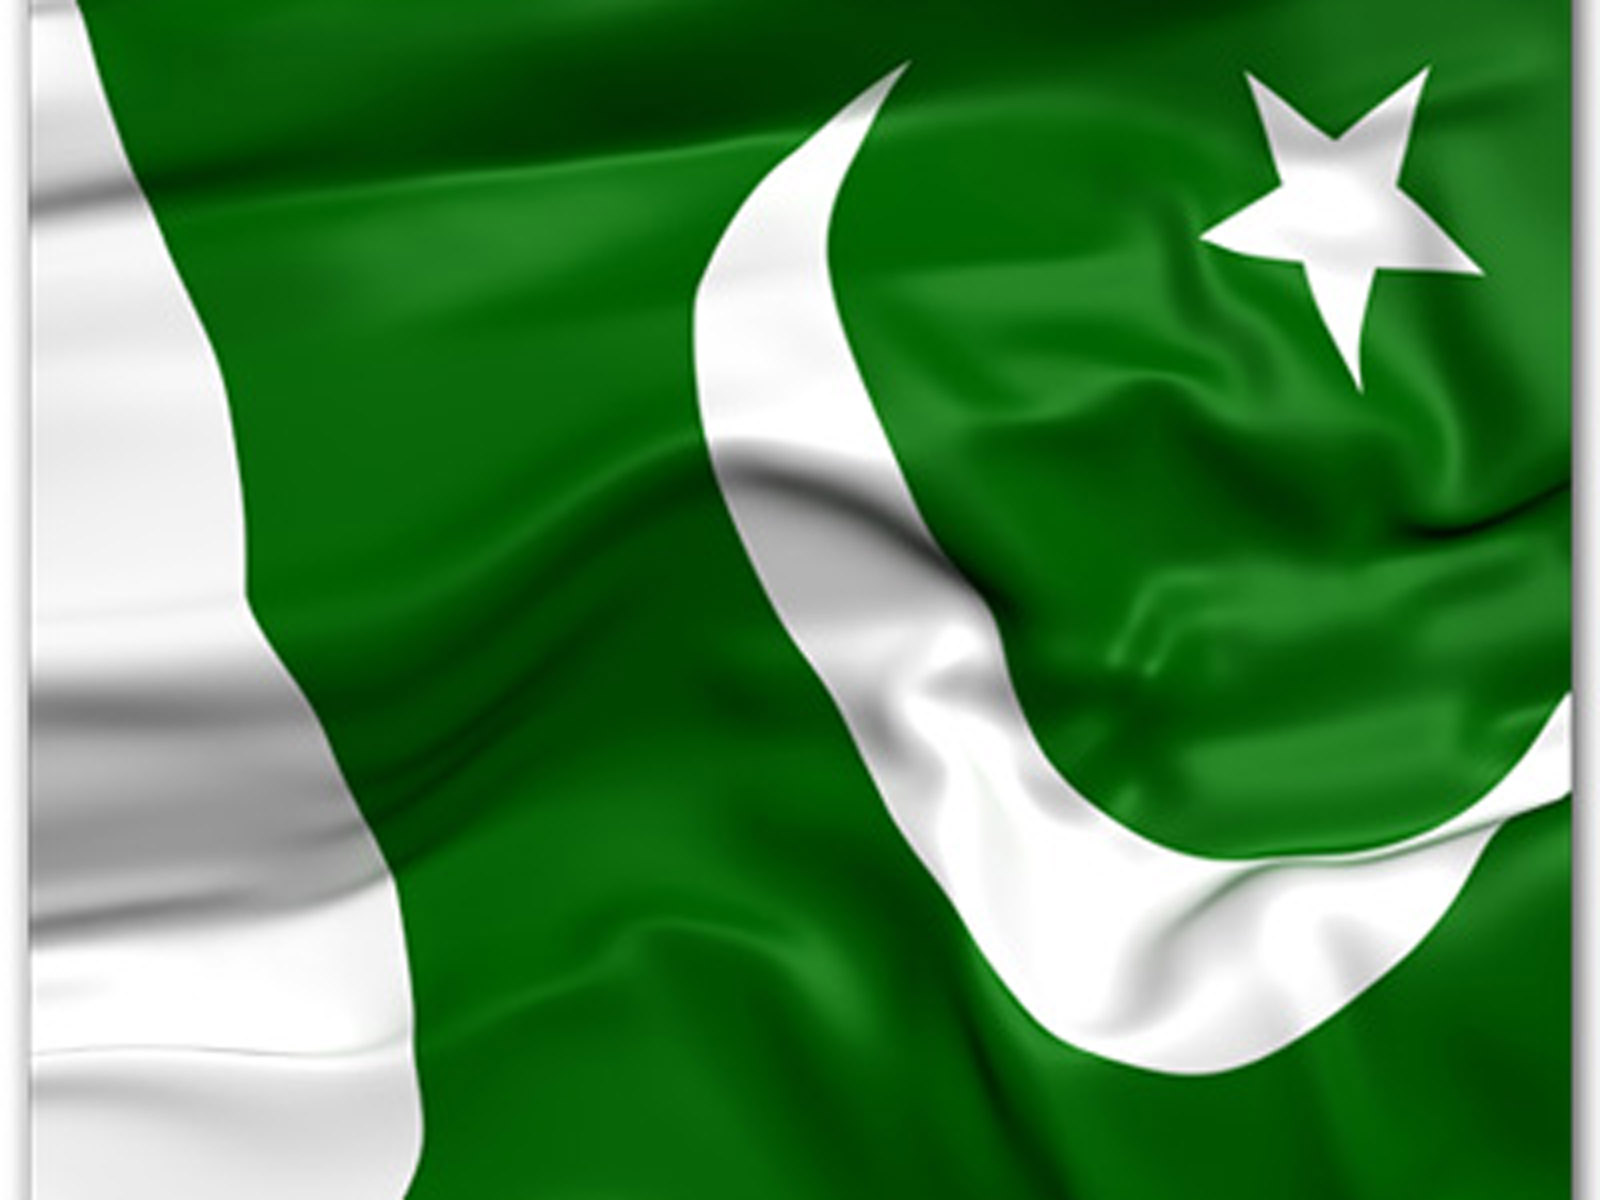 Pakistan flag images 2013 wallpapers for 3d wallpaper for home in pakistan